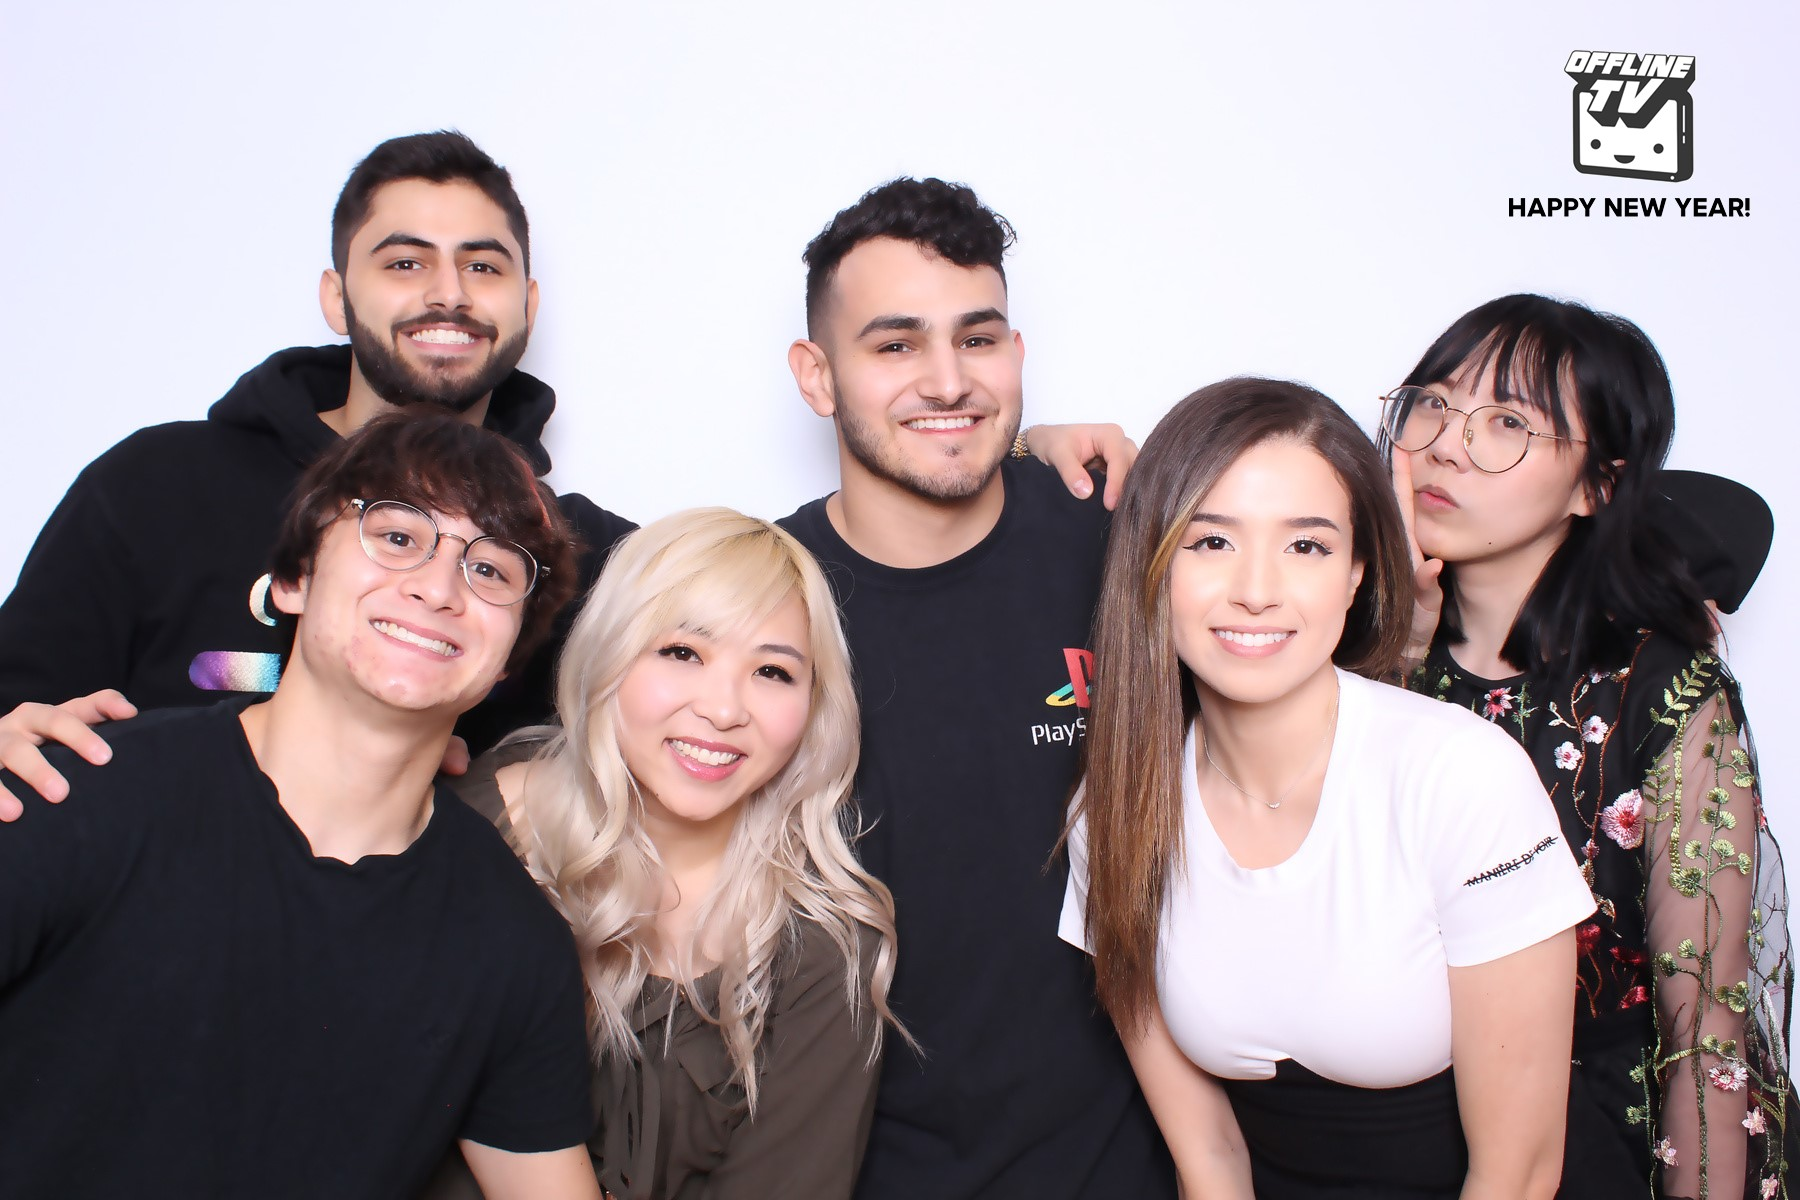 Fedmyster (third from right) has been removed form the OfflineTV house following multiple sexual abuse allegations from other members of the group.